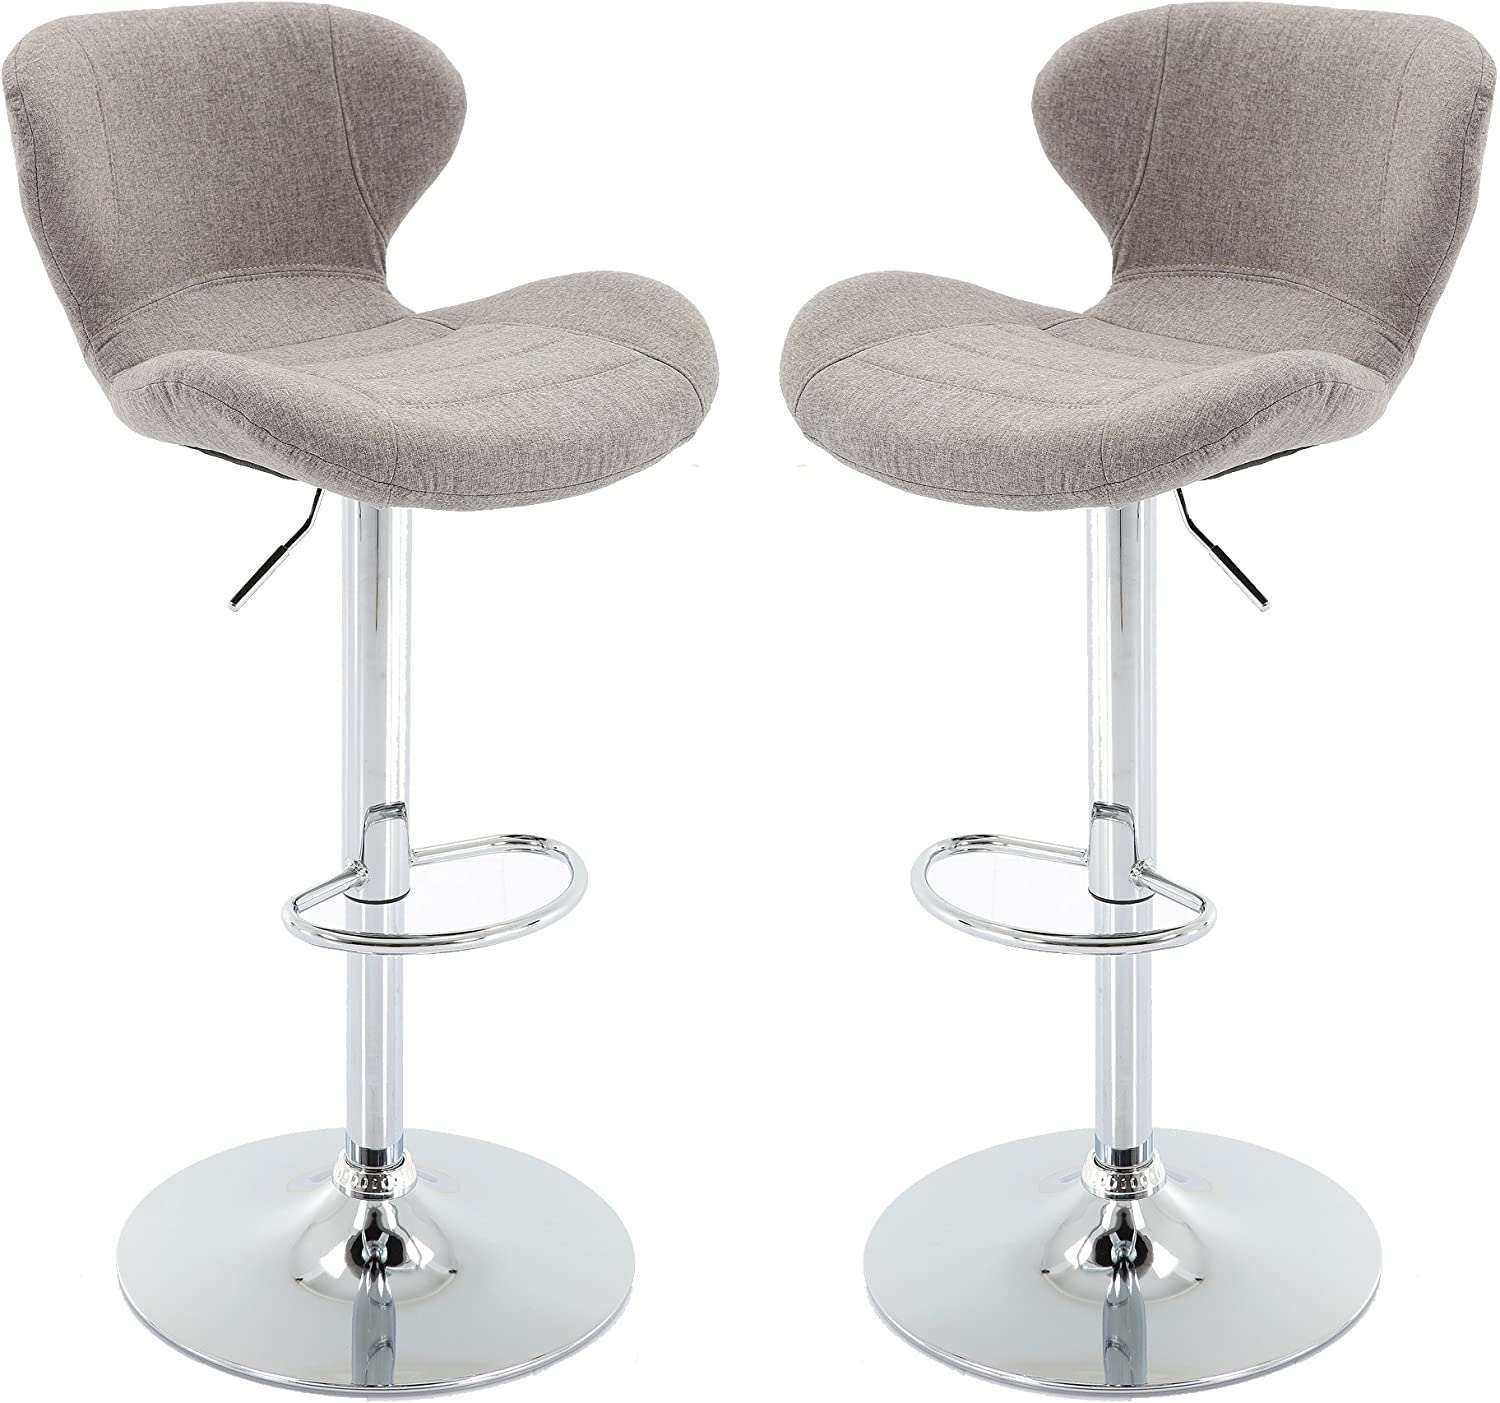 Vogue Furniture Direct Adjustable Upholstered Barstool, Grey Set of 2 VF1581026